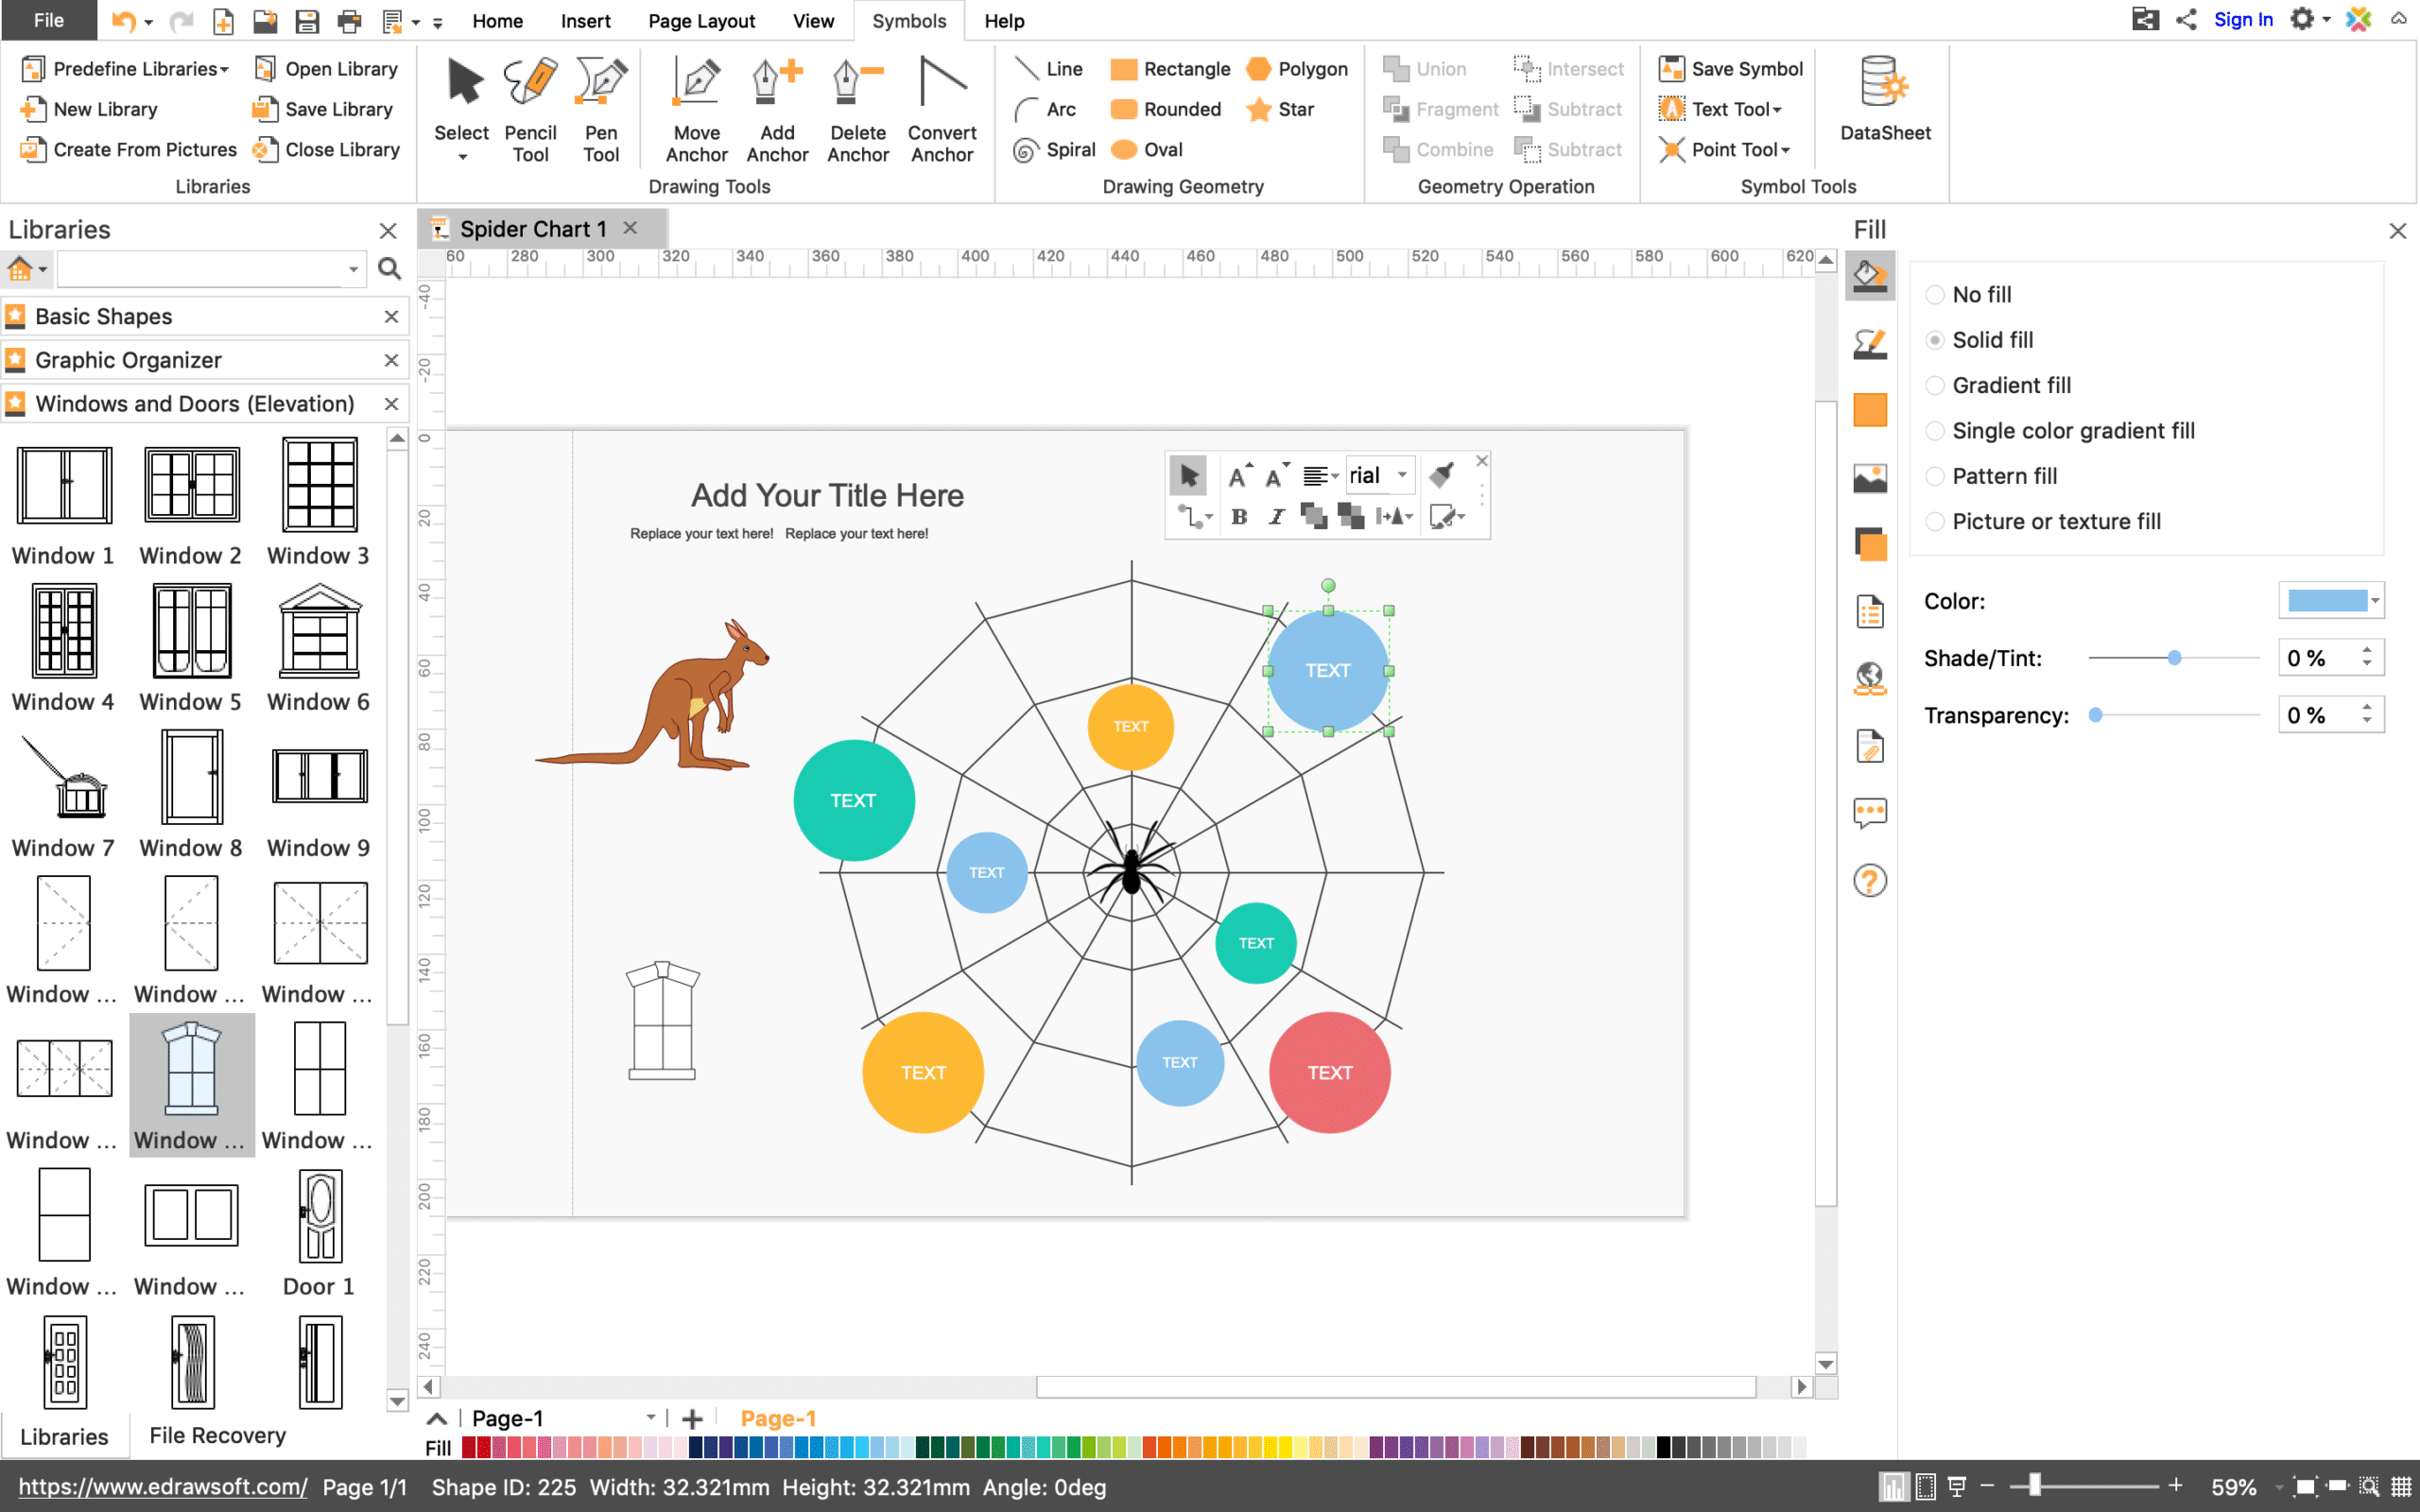 A Simple Yet Powerful Diagram Maker For Professional Needs